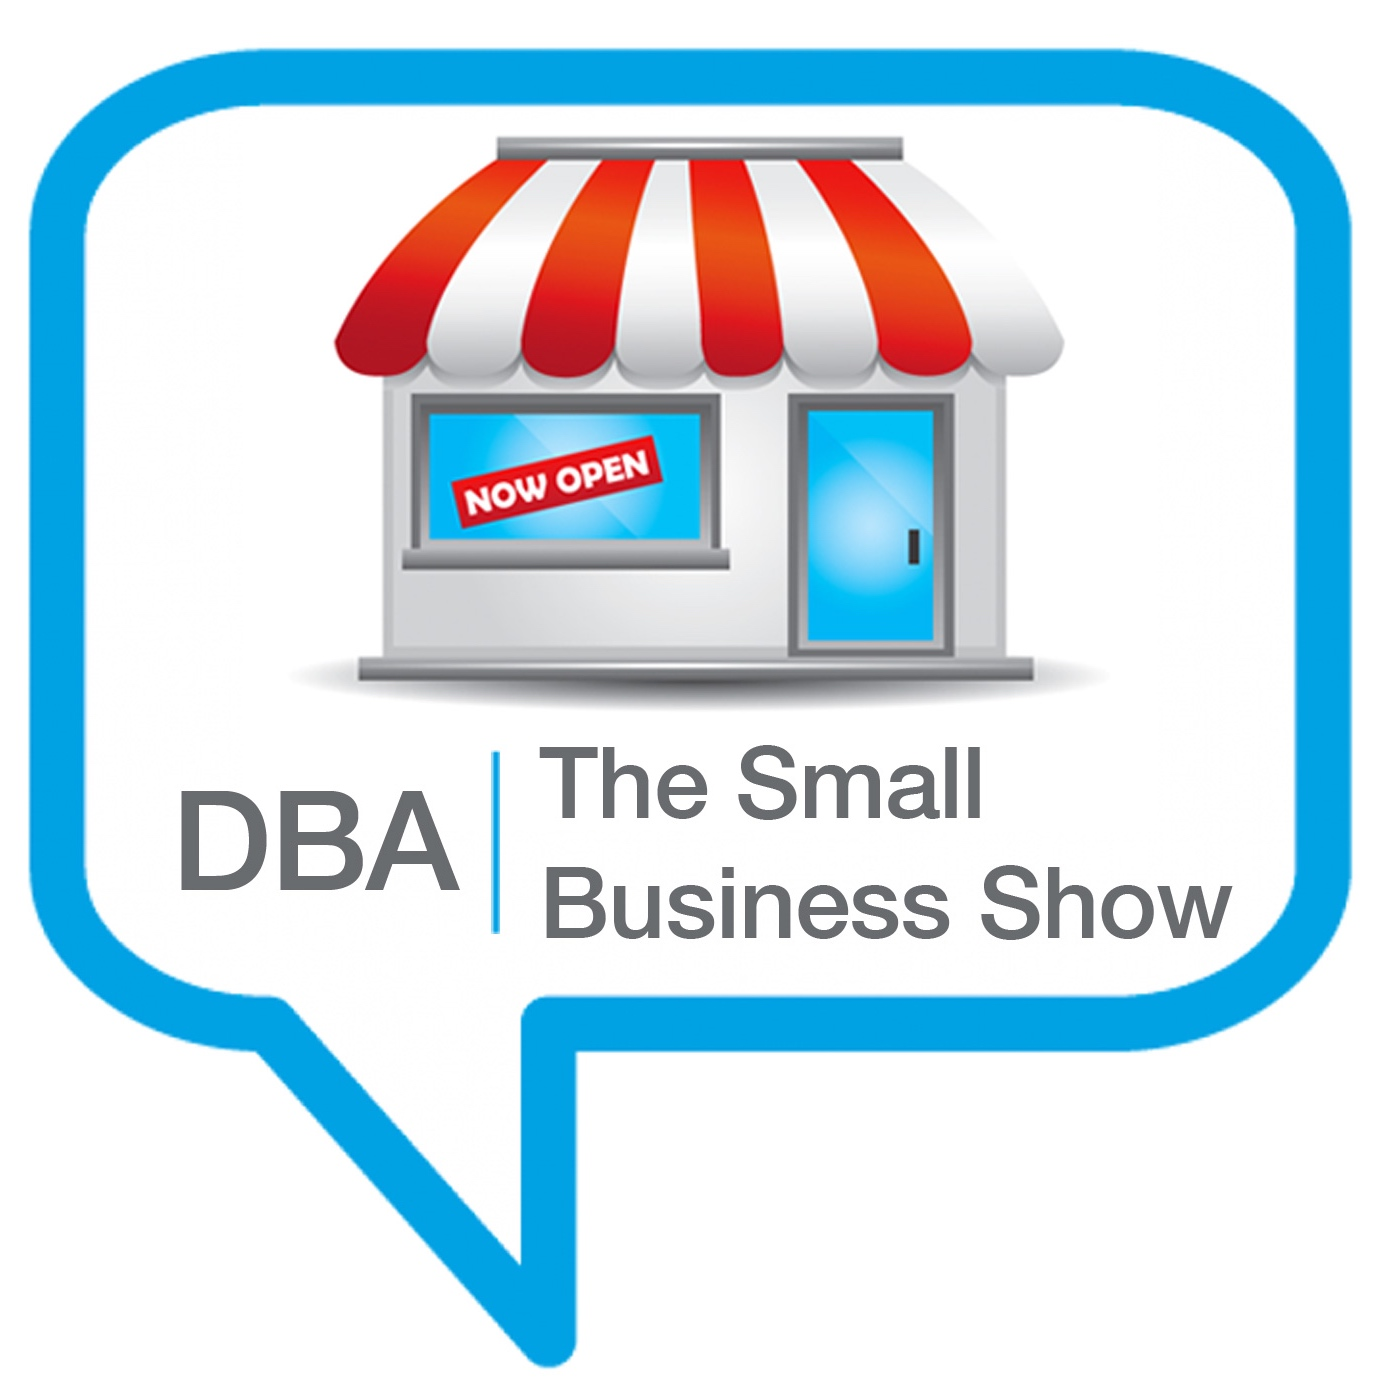 D.B.A. The Small Business Show